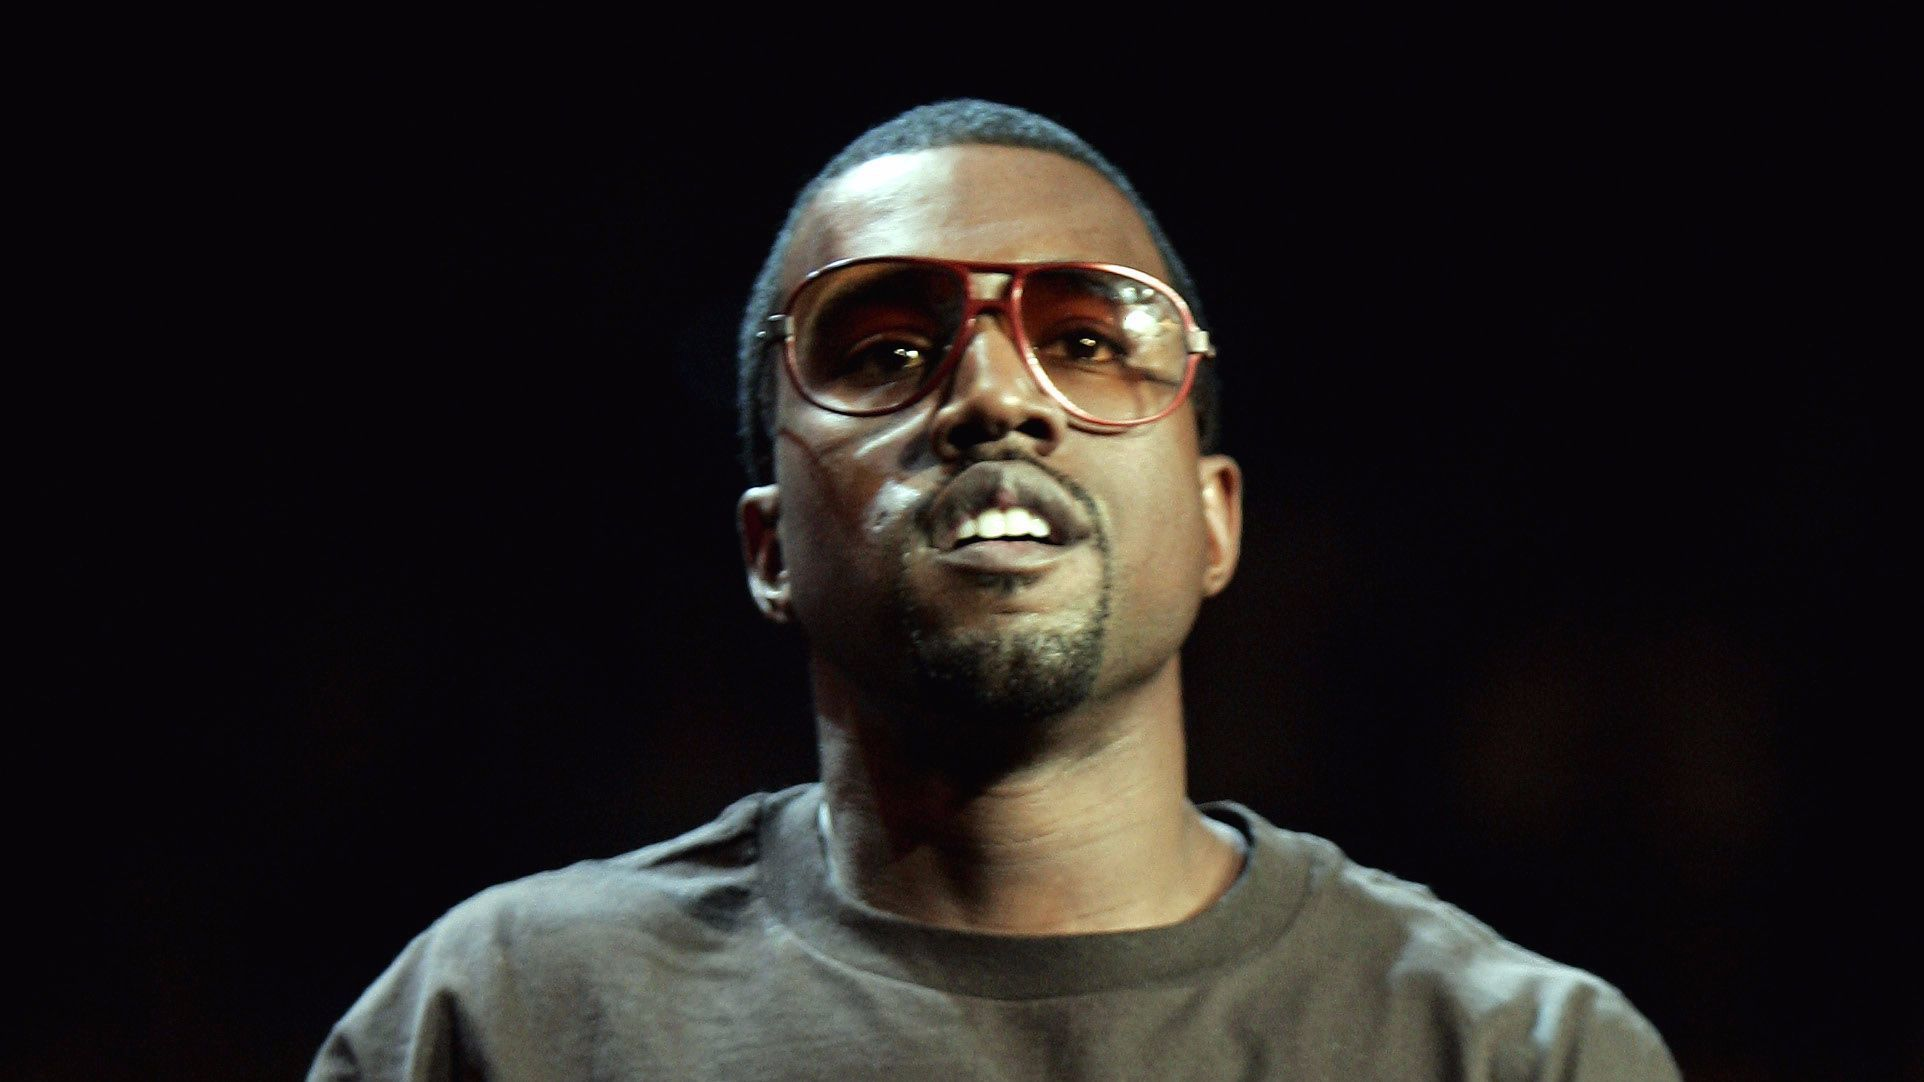 Singer Kanye West was arrested  Sept. 11, 2008, at Los Angeles International Airport after an altercation with a photographer.